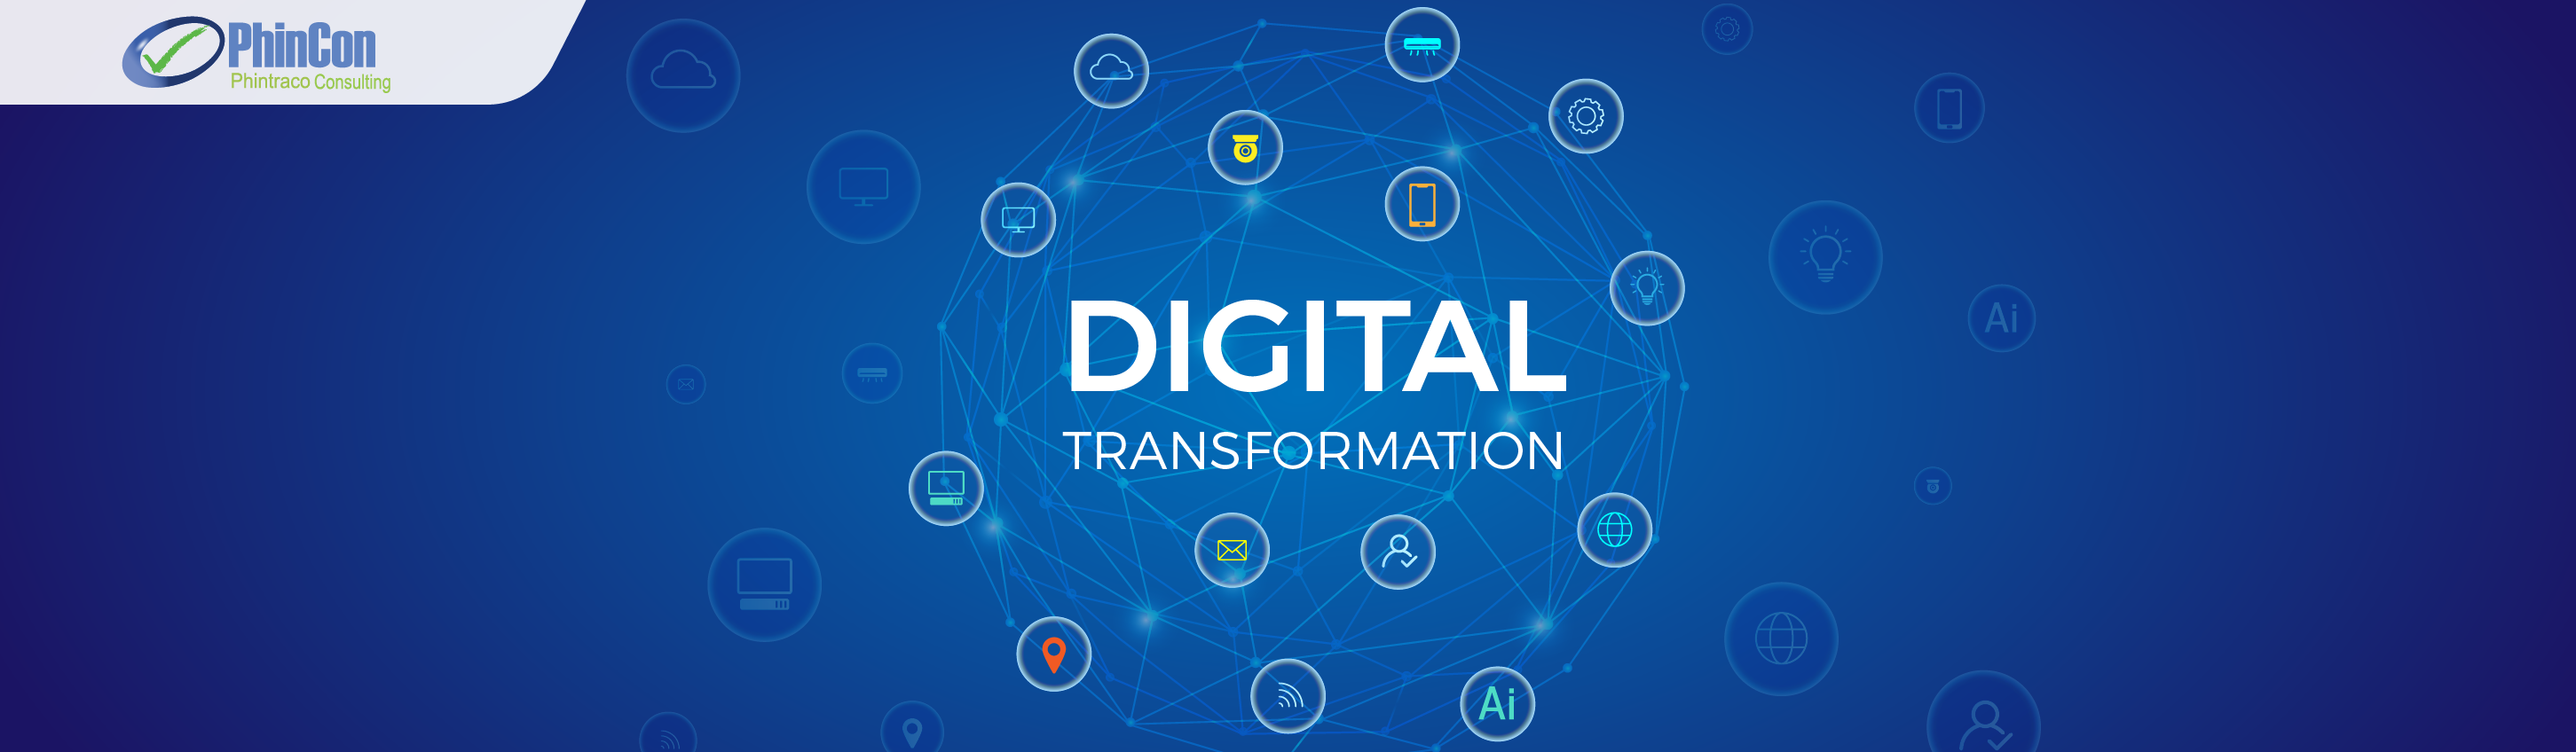 Digital Transformation Trends in 2021